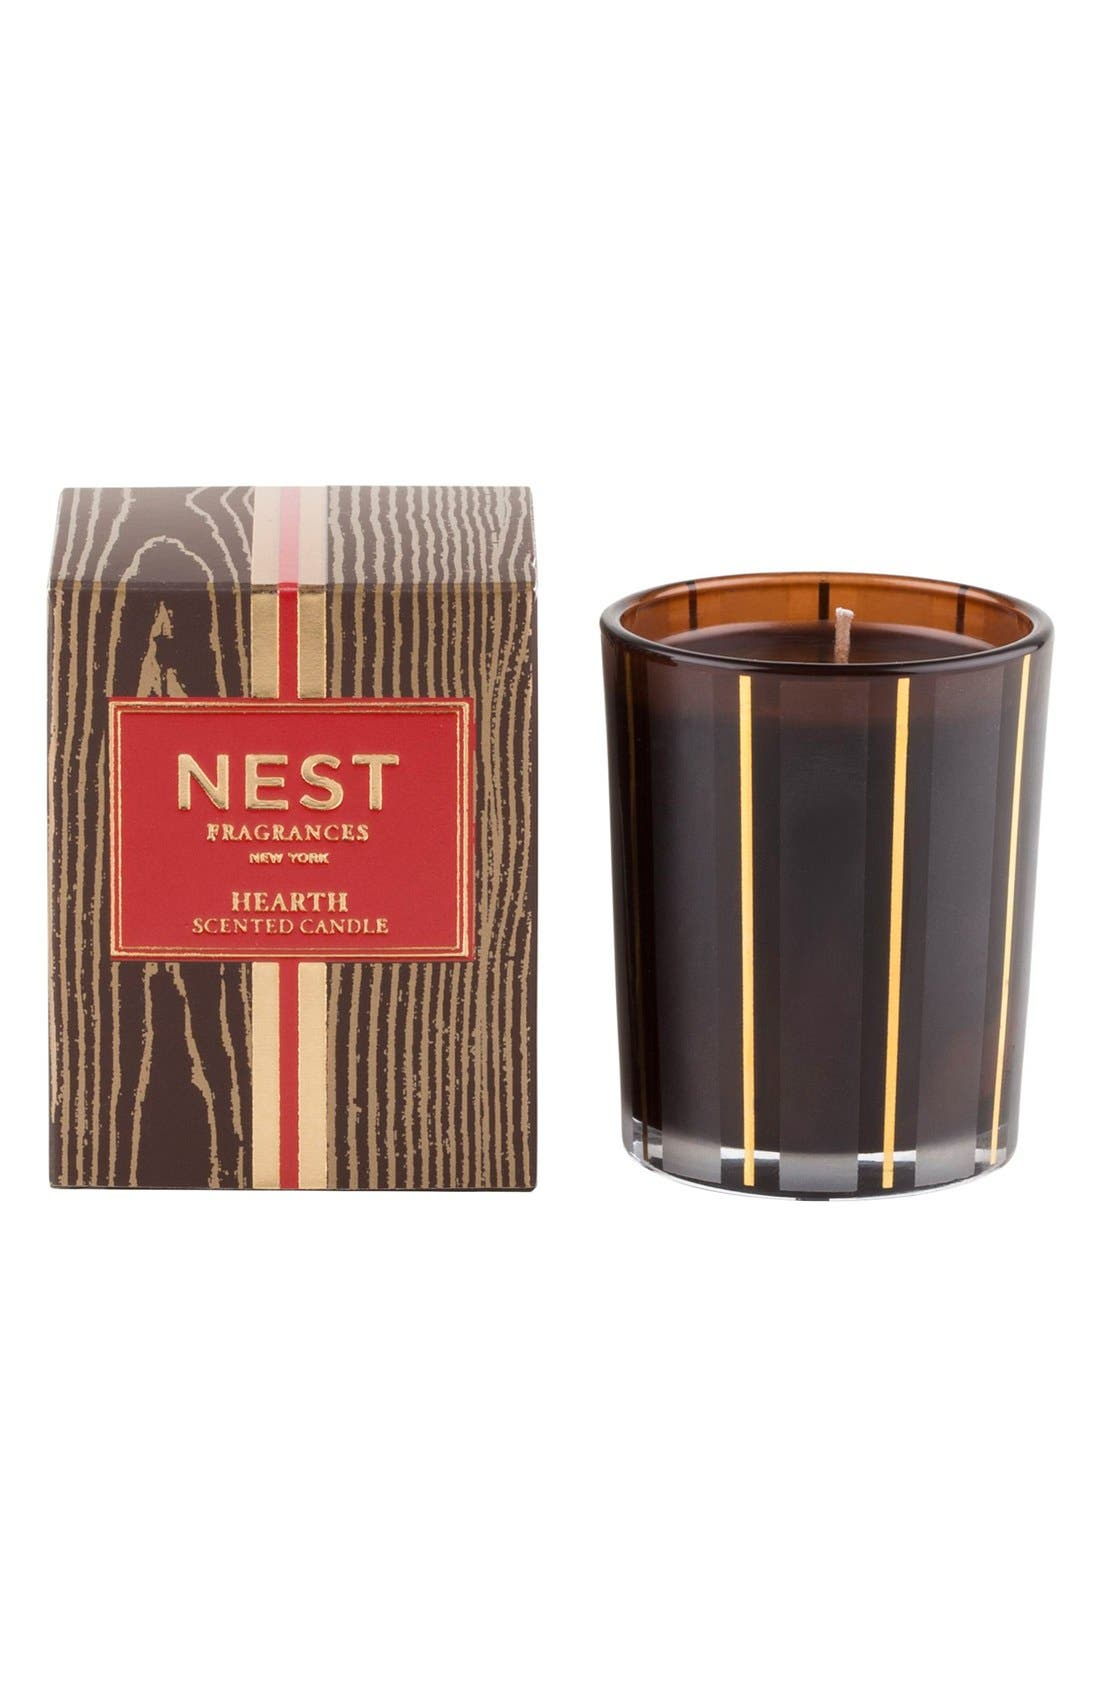 NEST Fragrances Hearth Scented Votive Candle